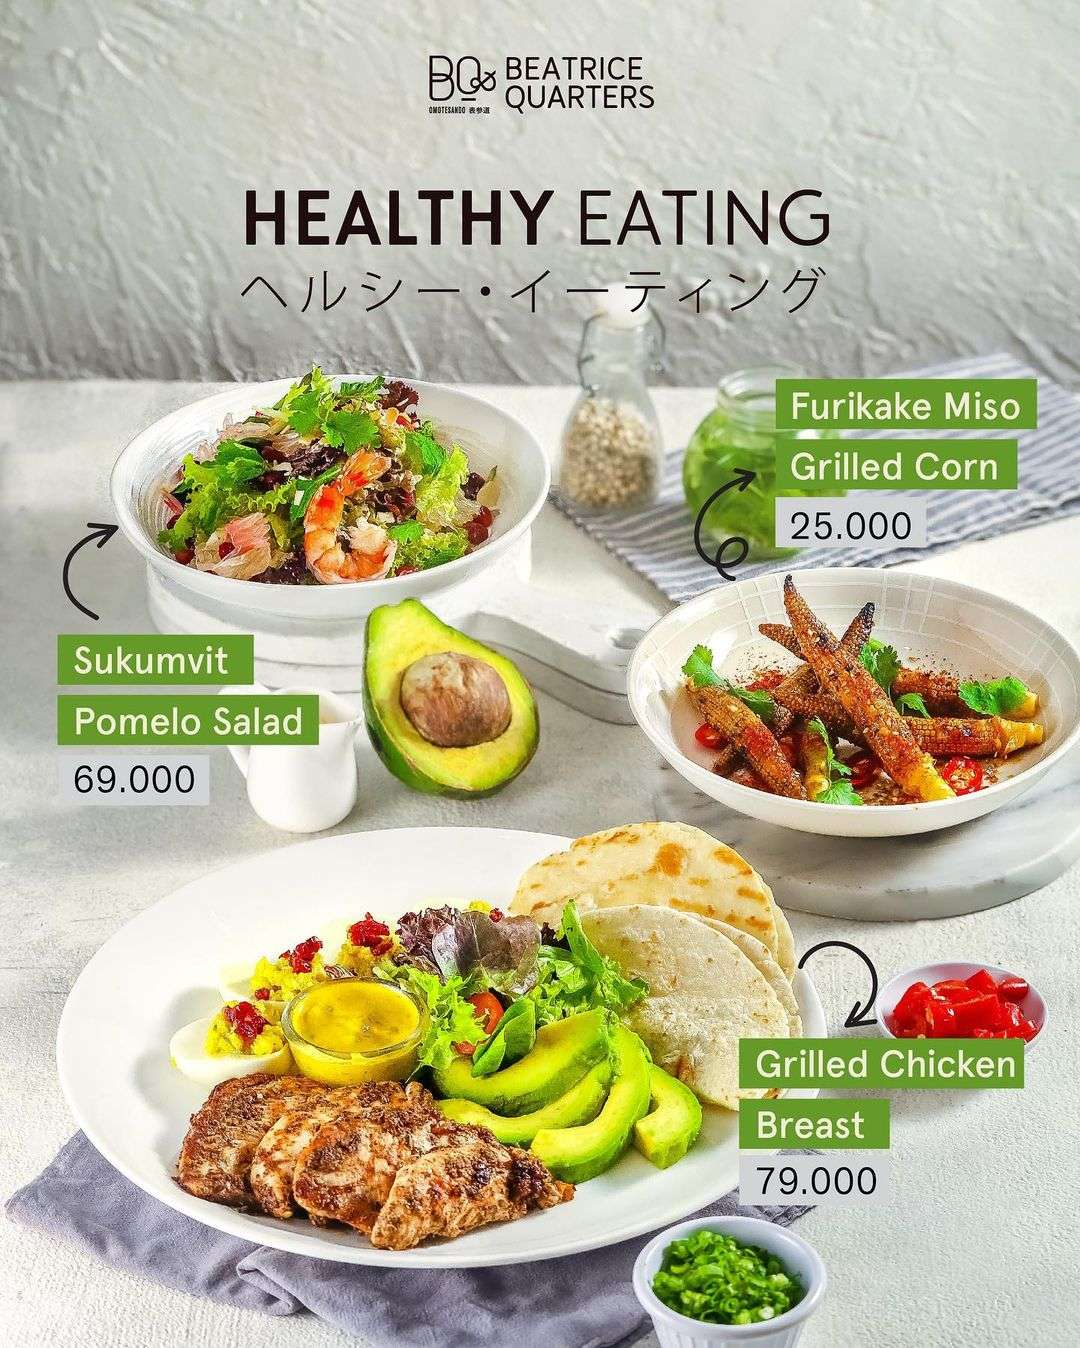 Diskon Beatrice Quarters Promo Healthy Eating Start From Rp. 25.000